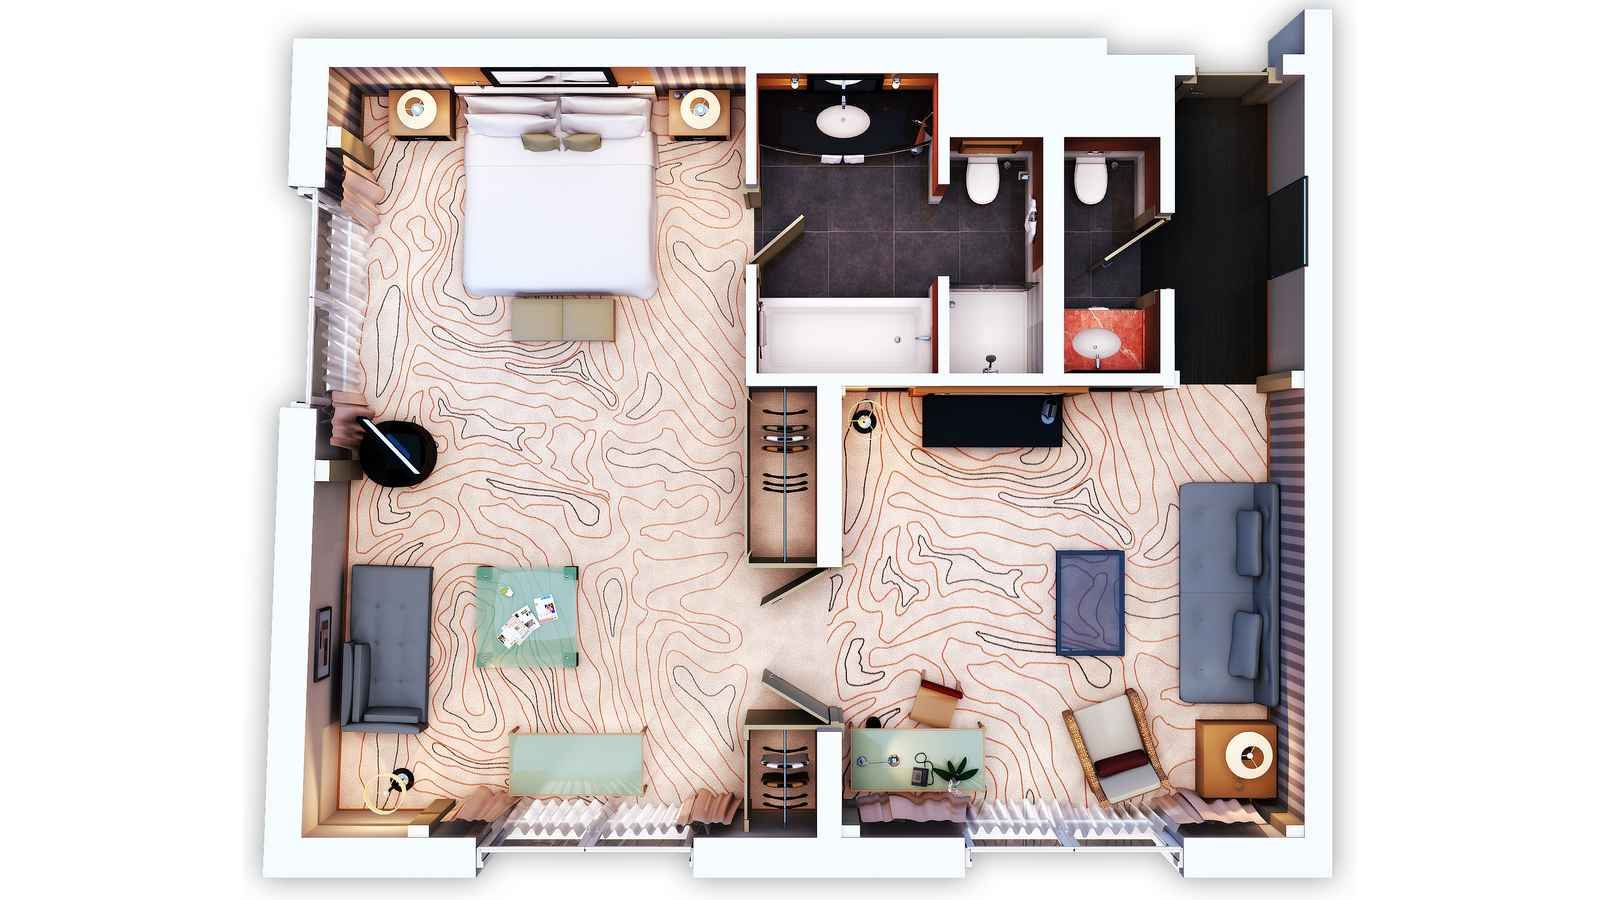 hotel suites floor plans | Feel totally relaxed at Le Méridien. Our ...